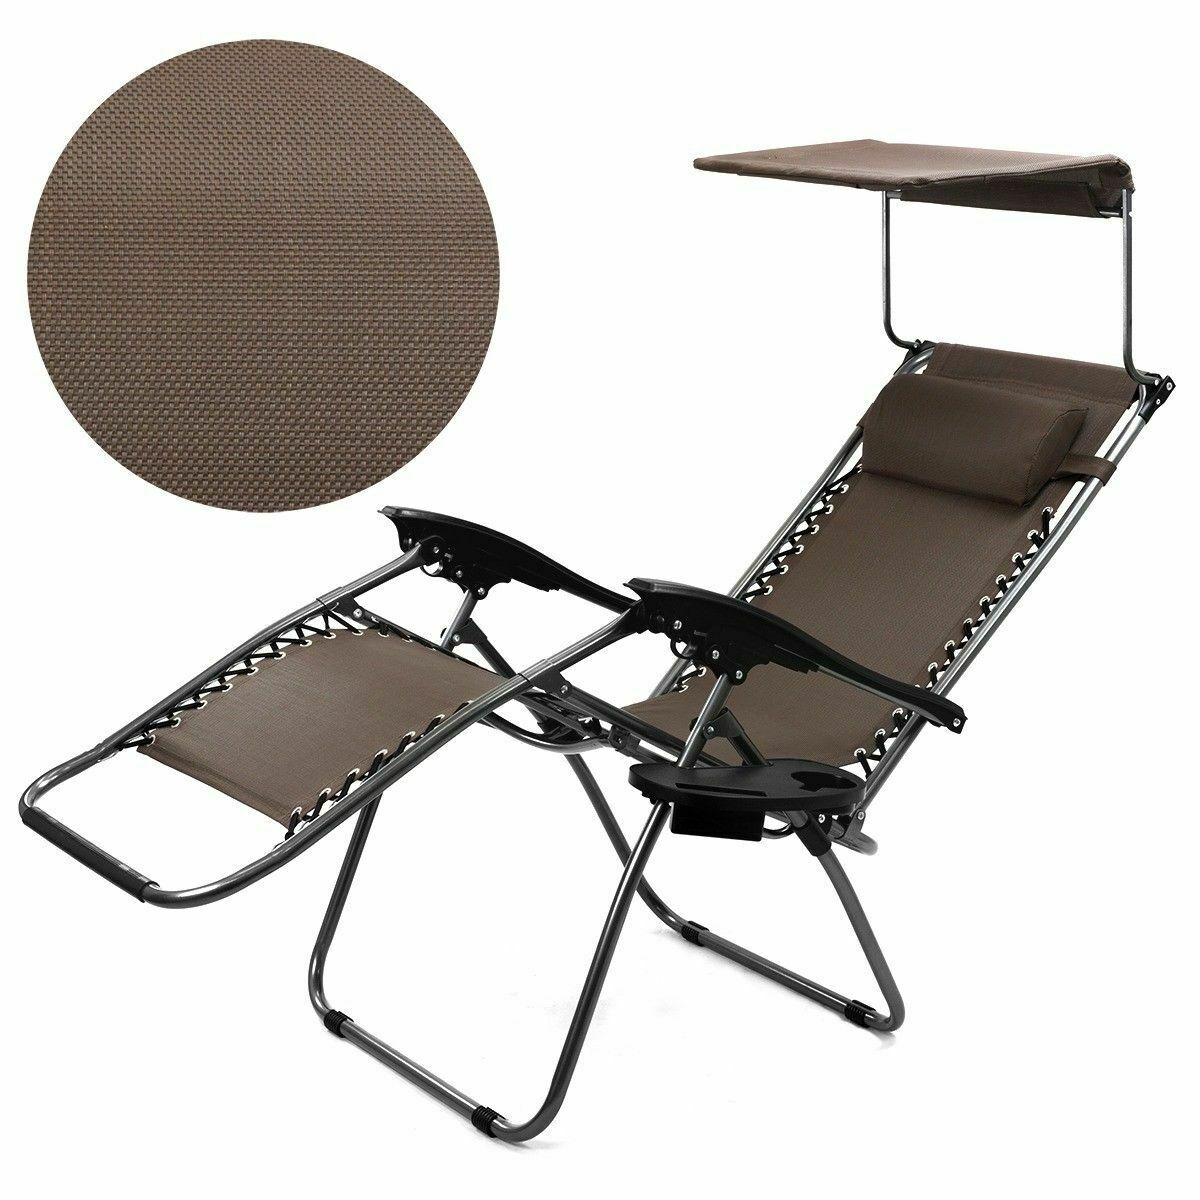 Brown Zero Gravity Lounge Chair Canopy Sun Shade Cup Holder Outdoor Garden  Patio 1 Of 9FREE Shipping ...